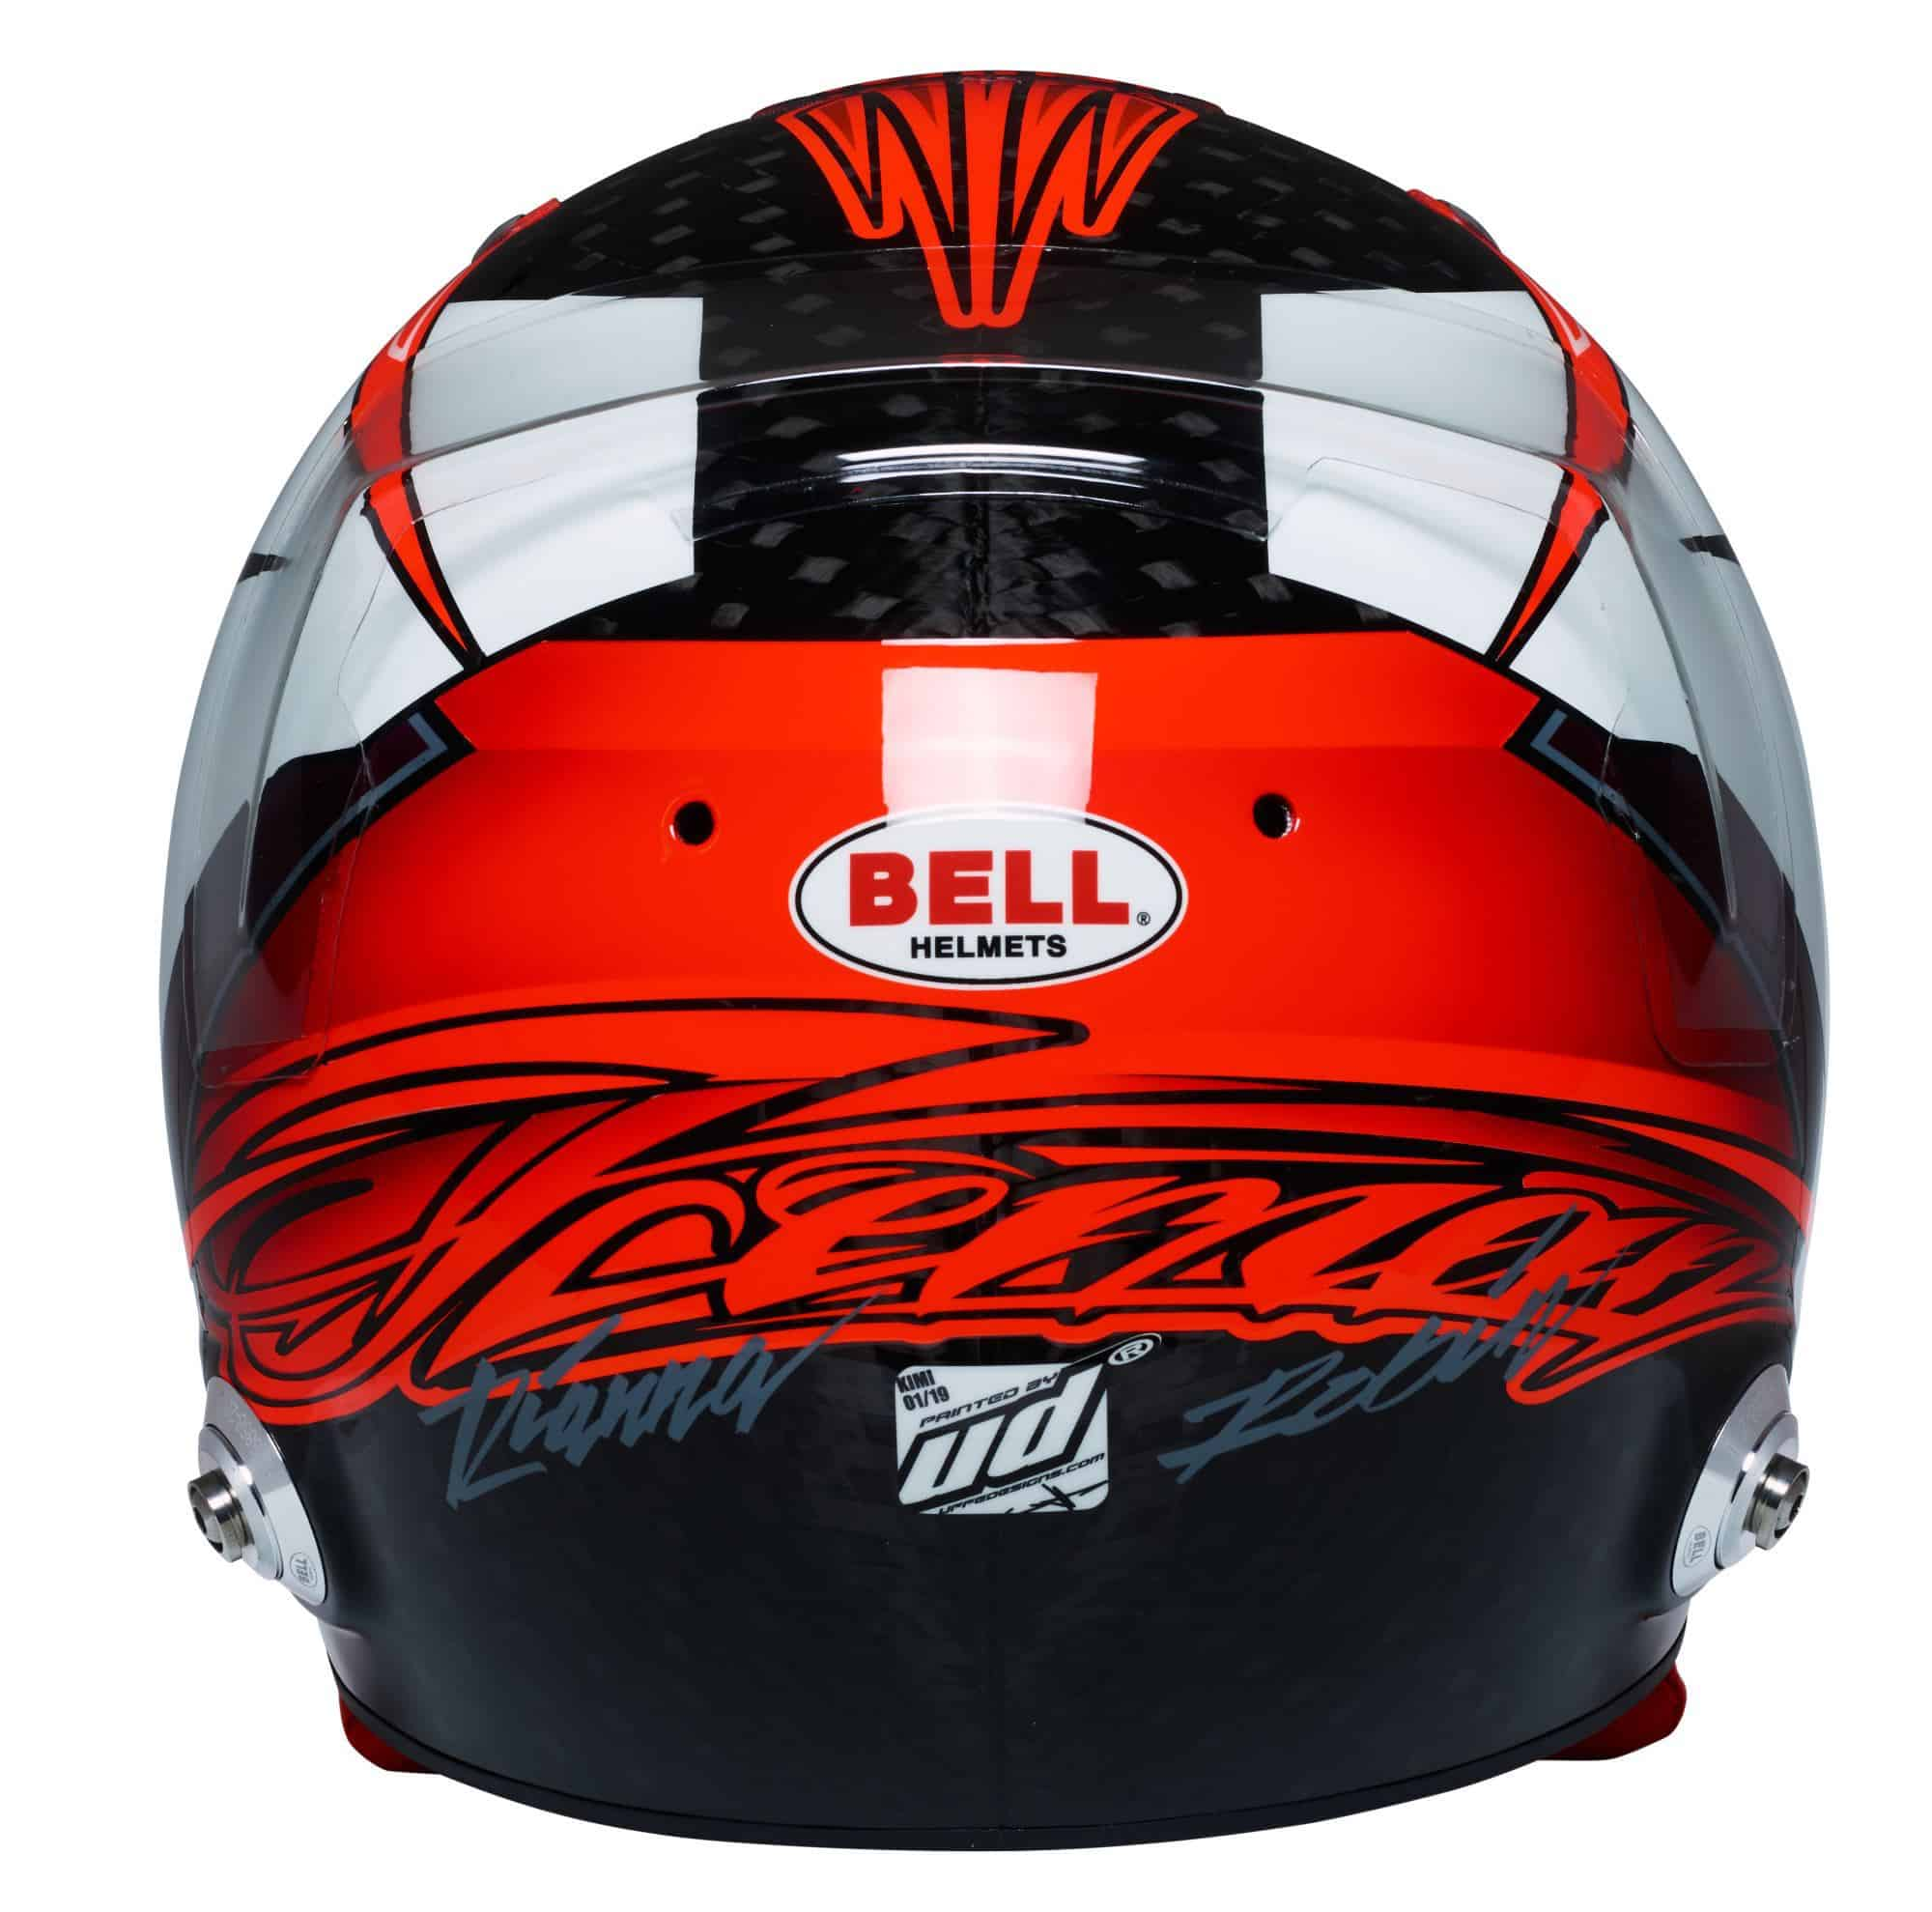 Kimi Raikkonen 2019 F1 helmet Alfa Romeo Racing rear Photo Alfa Romeo Edited by MAXF1net